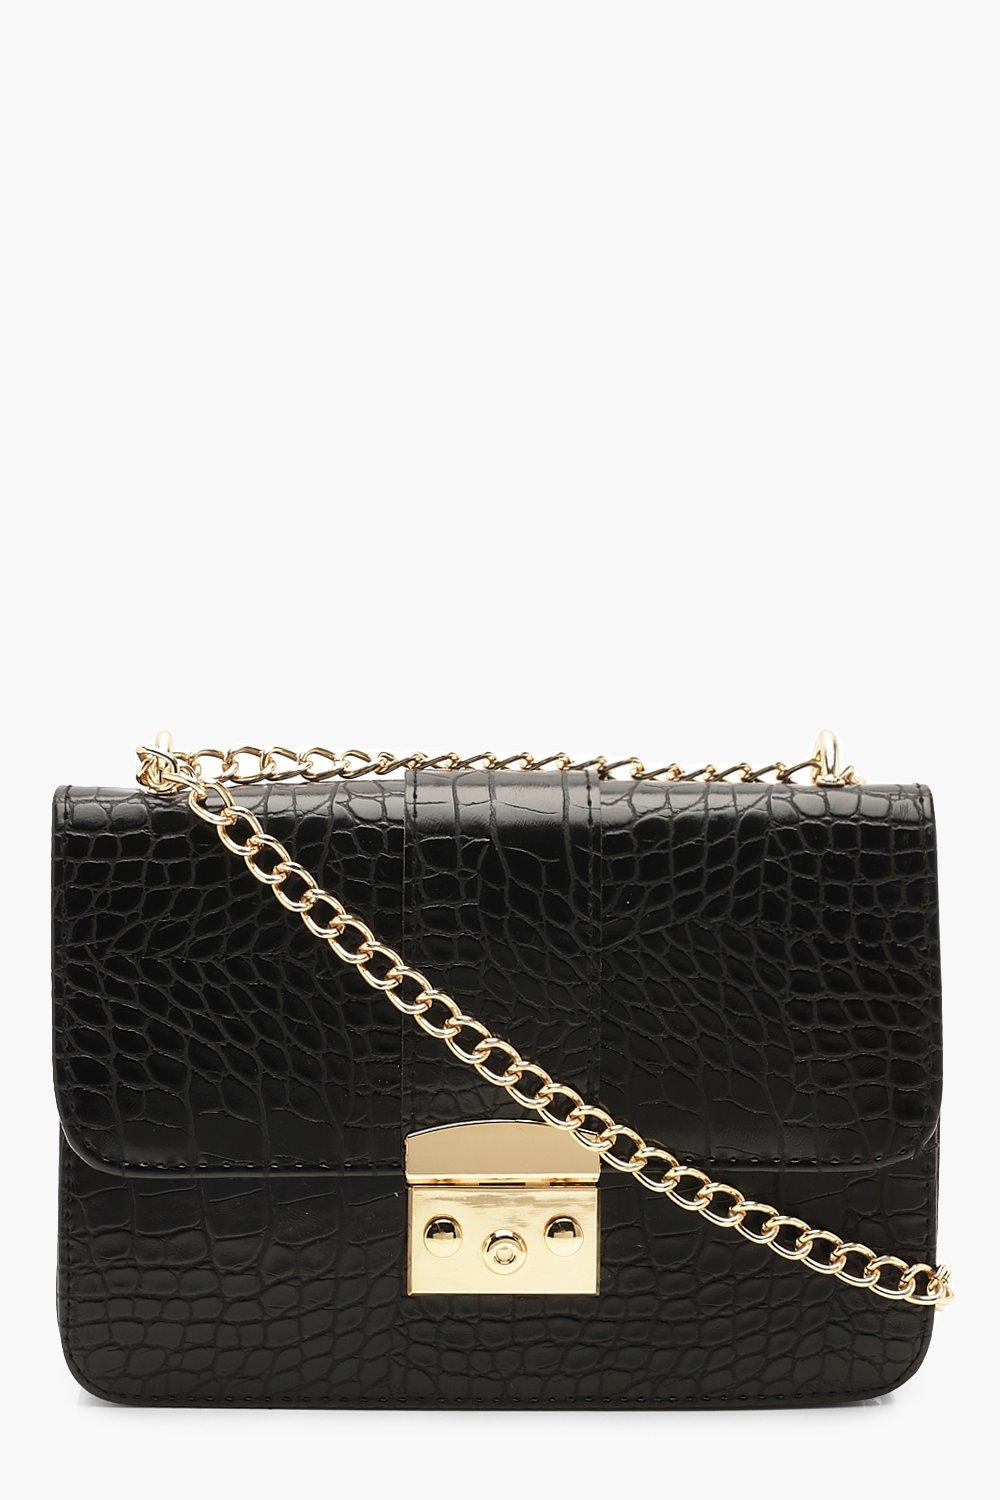 Croc & Lock Cross Body